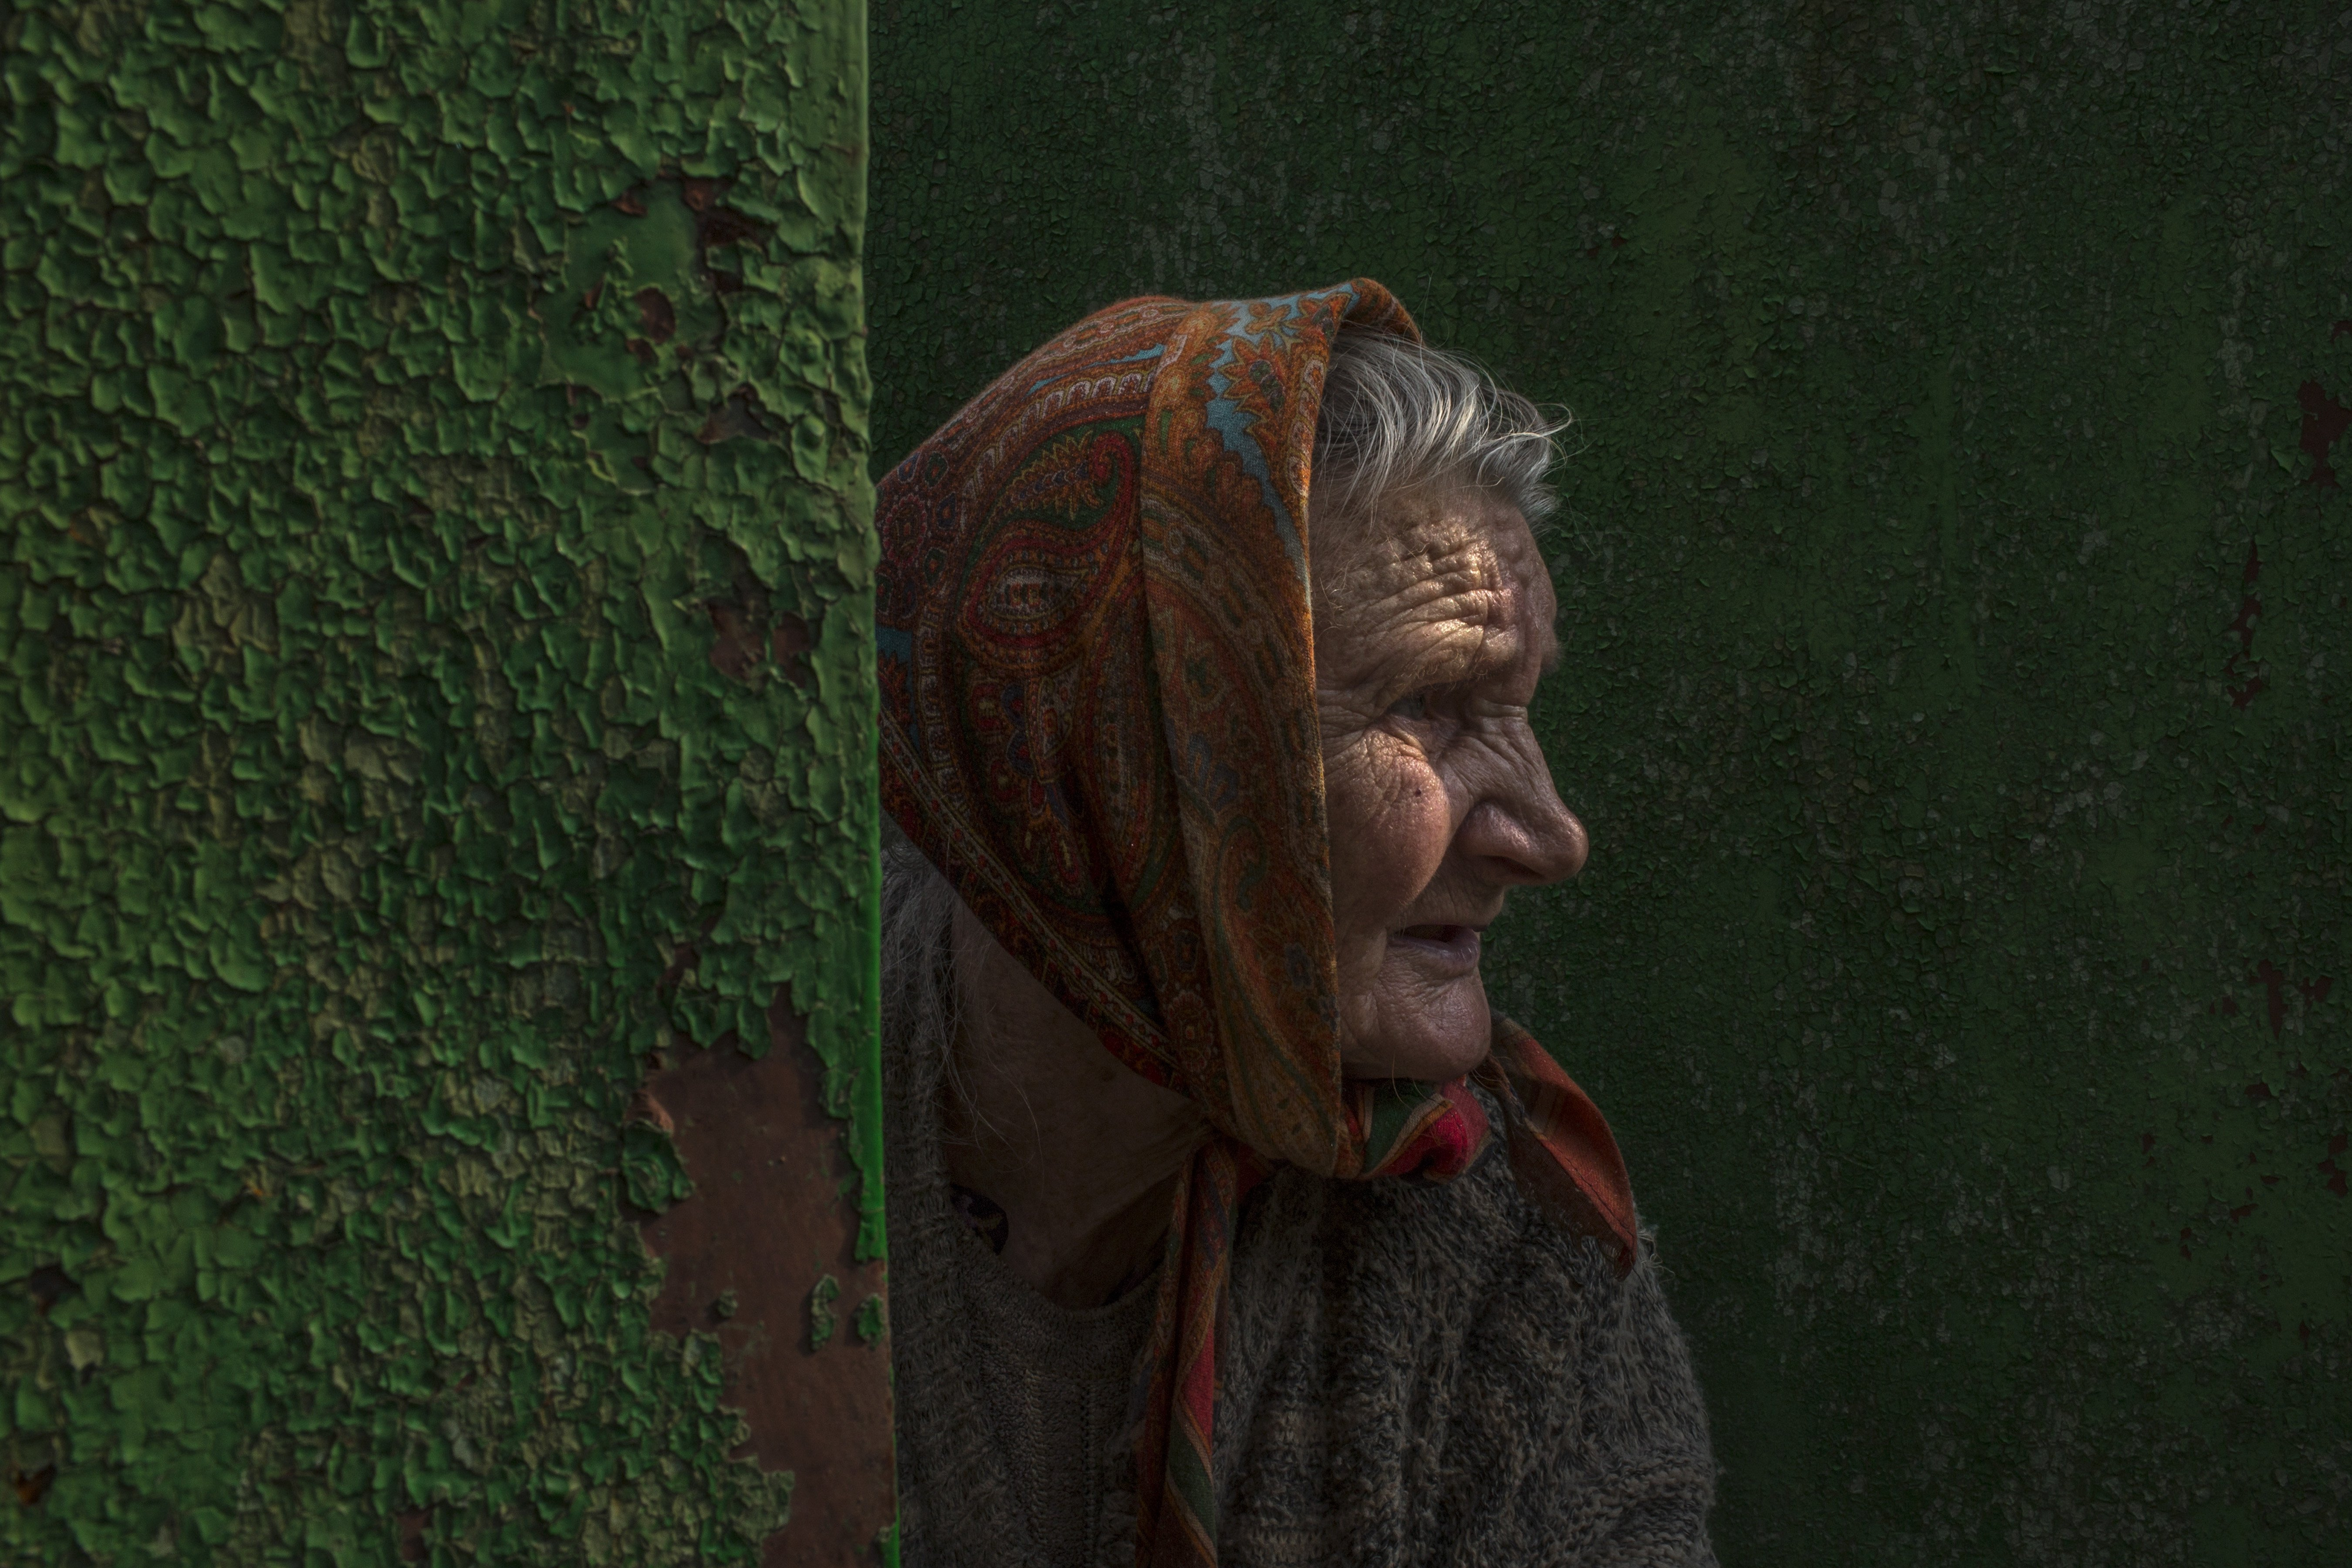 Aug. 1, 2014. After collecting a few apples from a nearby tree, Nadezda Ivanovna peers through the gate of her home on the outskirts of Slovyansk, Ukraine.